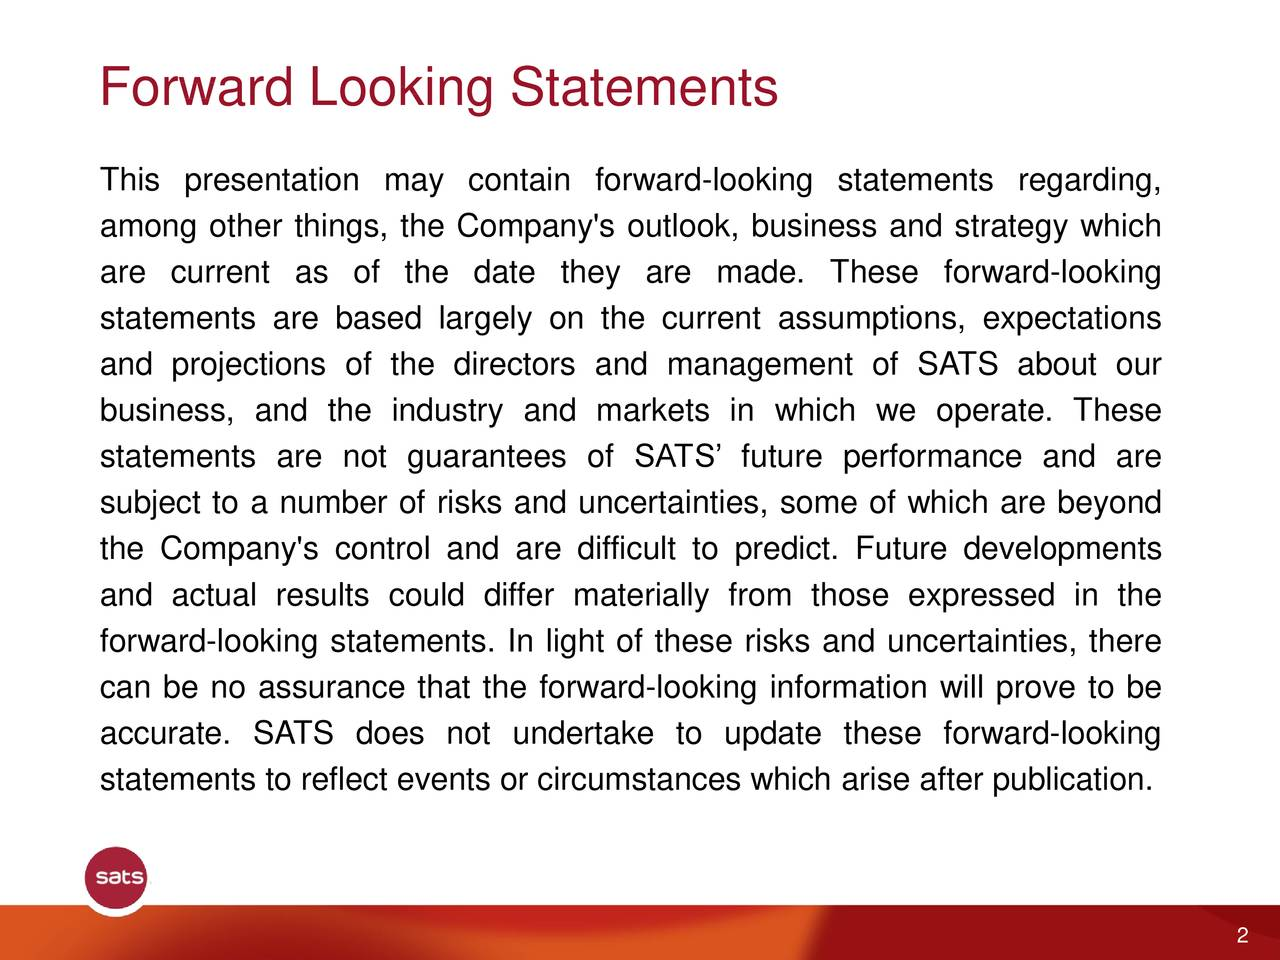 This presentation may contain forward-looking statements regarding, among other things, the Company's outlook, business and strategy which are current as of the date they are made. These forward-looking statements are based largely on the current assumptions, expectations and projections of the directors and management of SATS about our business, and the industry and markets in which we operate. These statements are not guarantees of SATS' future performance and are subject to a number of risks and uncertainties, some of which are beyond the Company's control and are difficult to predict. Future developments and actual results could differ materially from those expressed in the forward-looking statements. In light of these risks and uncertainties, there can be no assurance that the forward-looking information will prove to be accurate. SATS does not undertake to update these forward-looking statements to reflect events or circumstances which arise after publication. 2